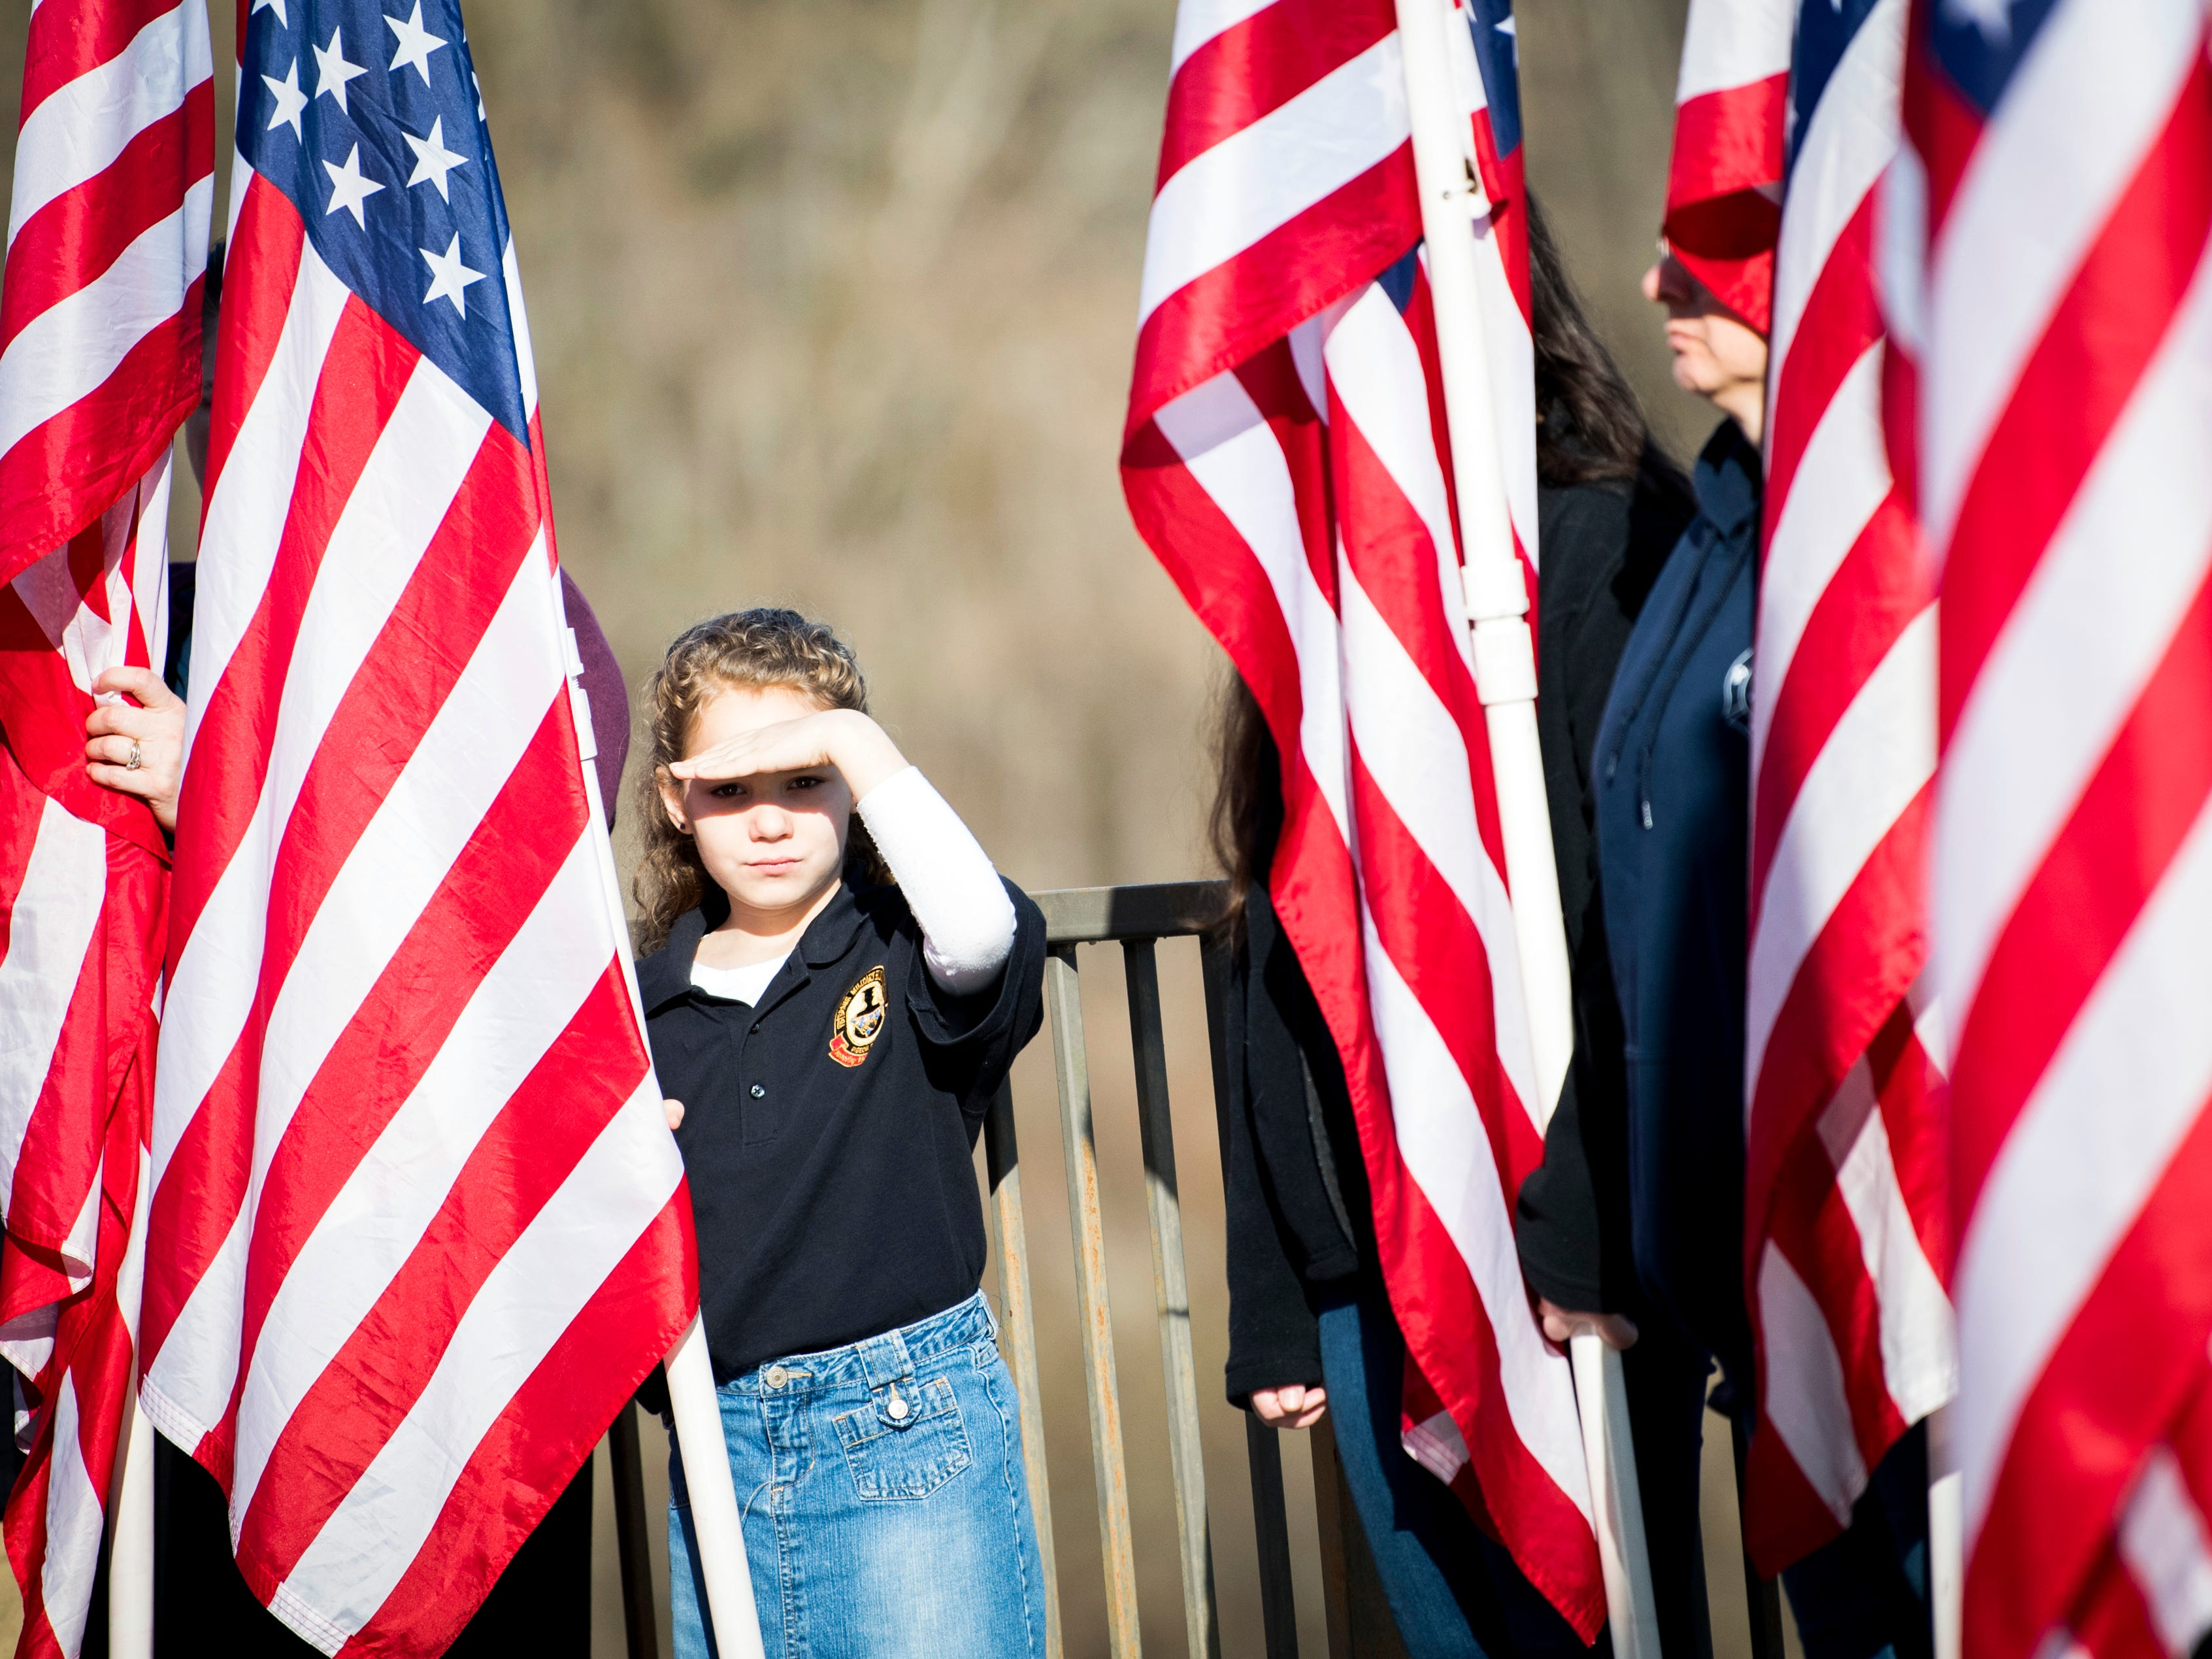 A child holds up an American flag during a military memorial service for seven East Tennessee veterans held at the East Tennessee Veterans Cemetery on Gov. John Sevier Highway on Tuesday, February 5, 2019.